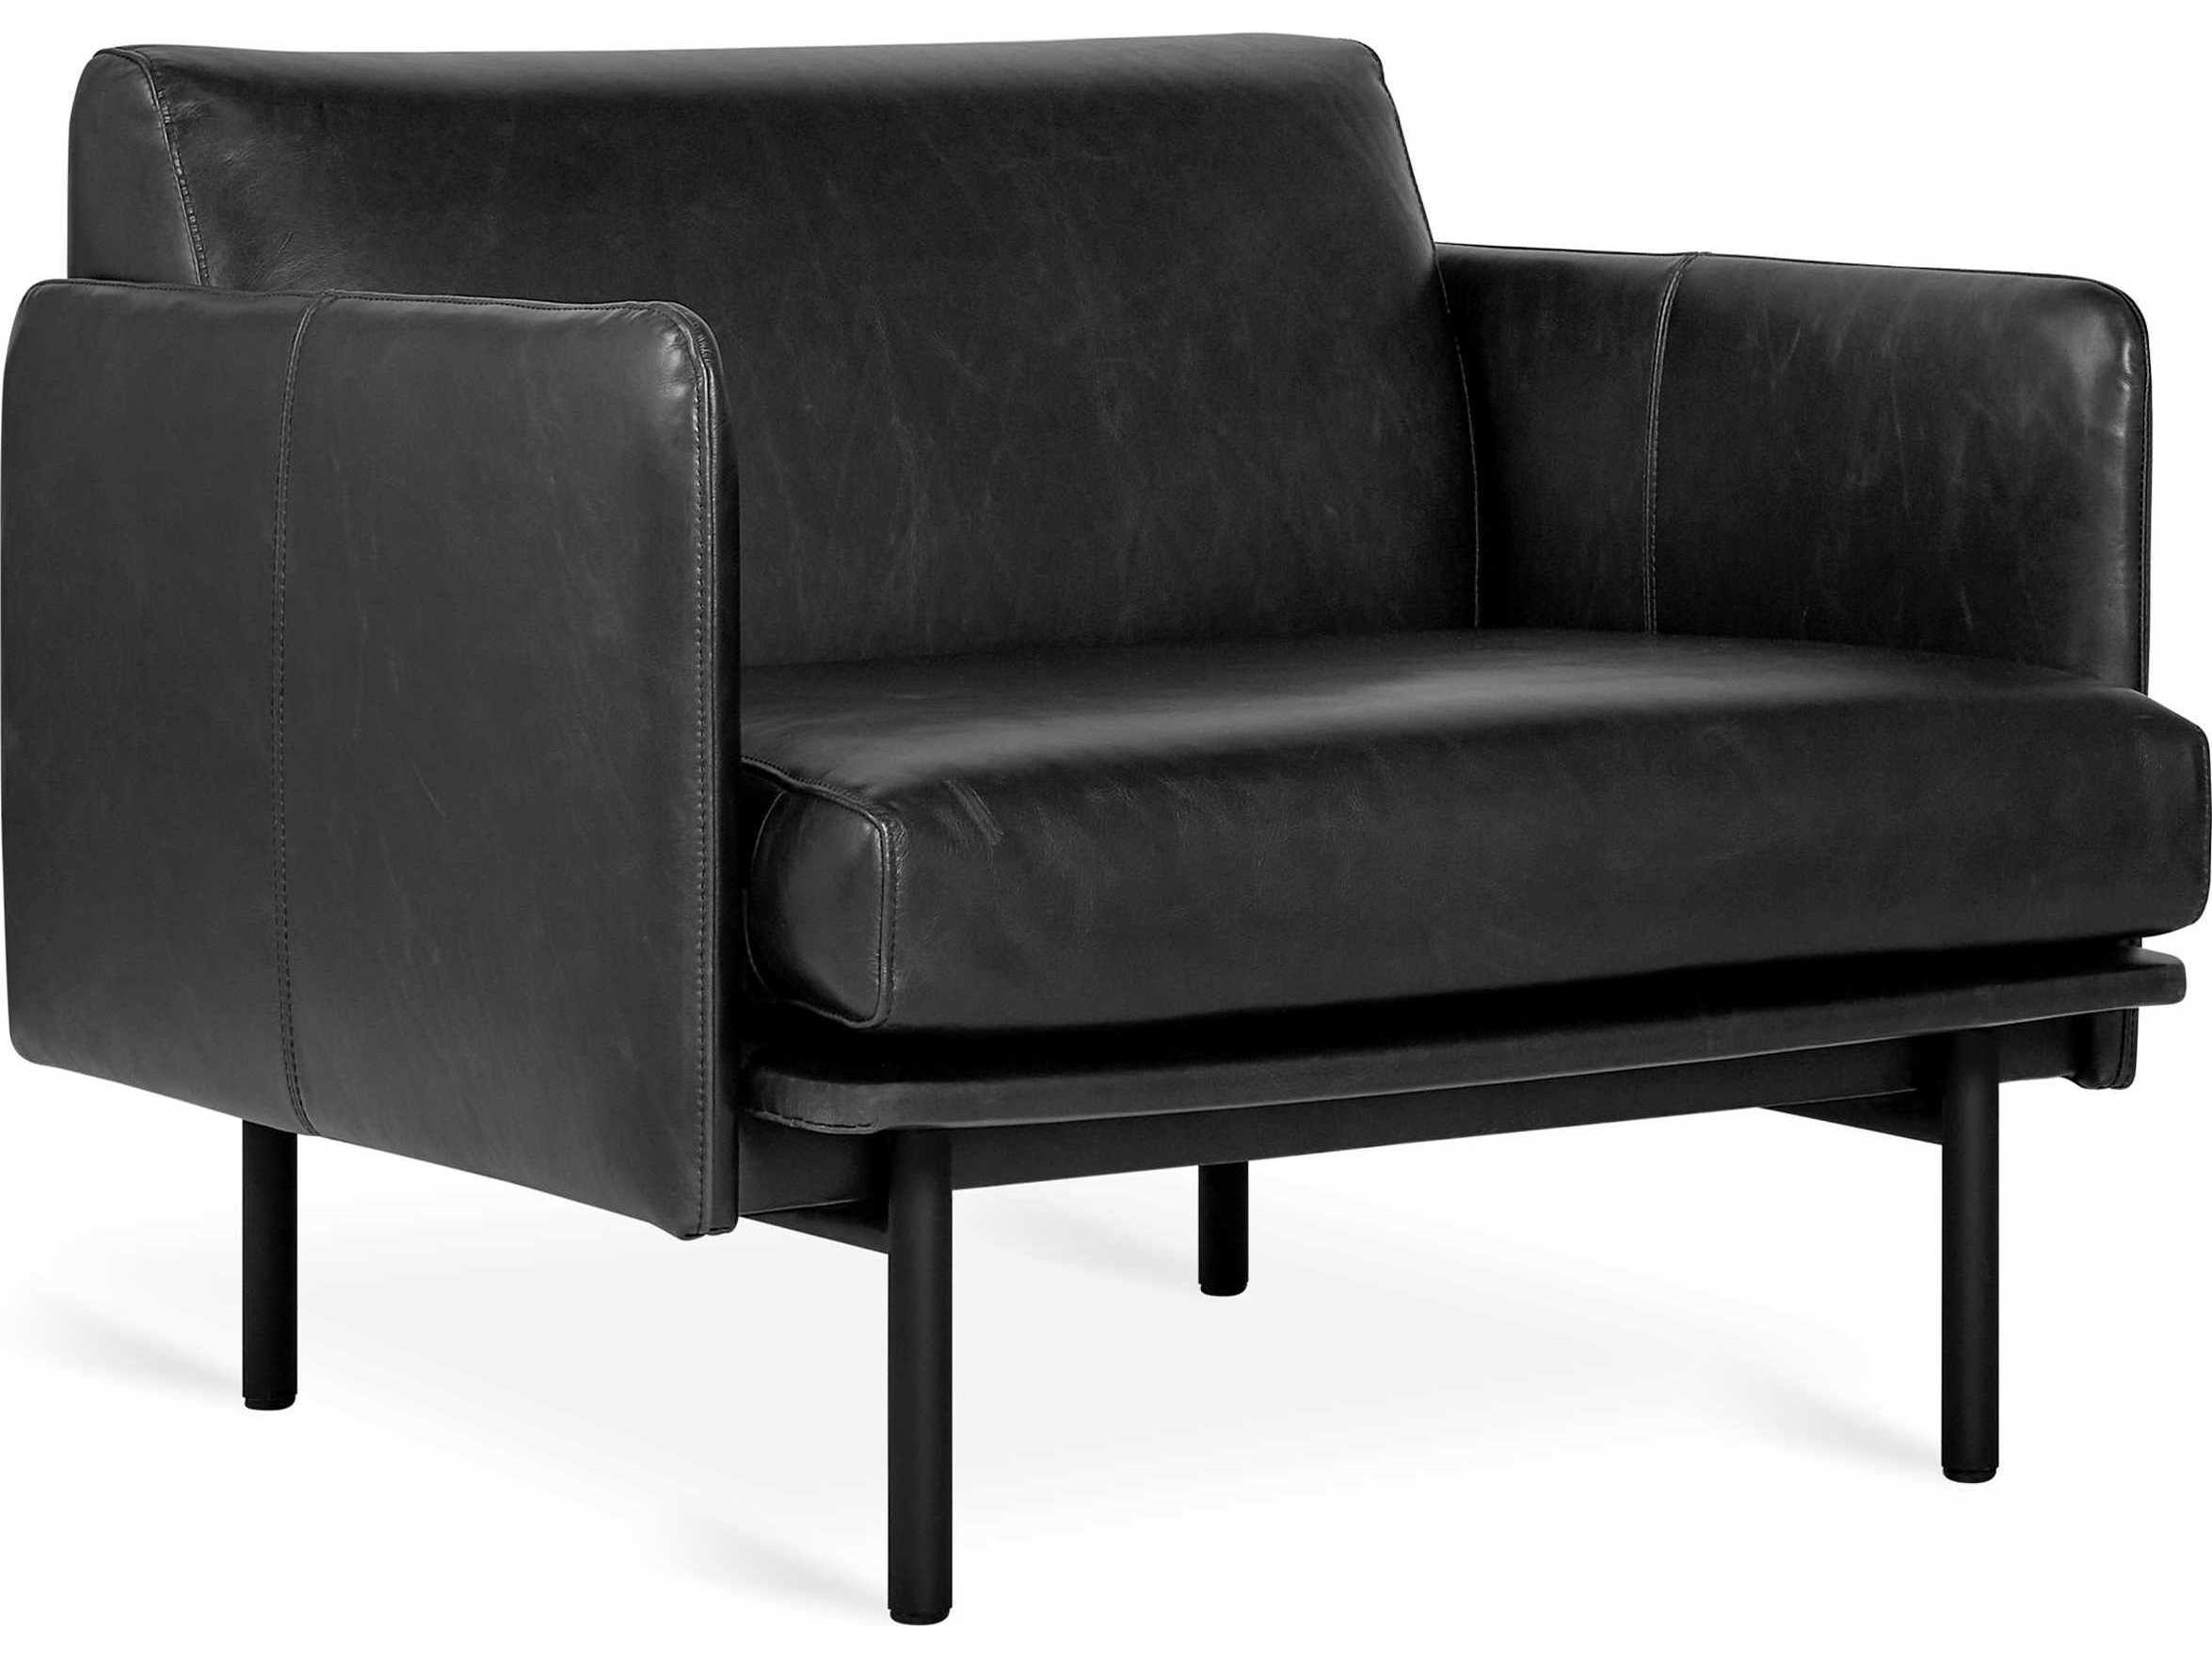 Gus Modern Foundry Saddle Black, Black Leather Accent Chairs For Living Room